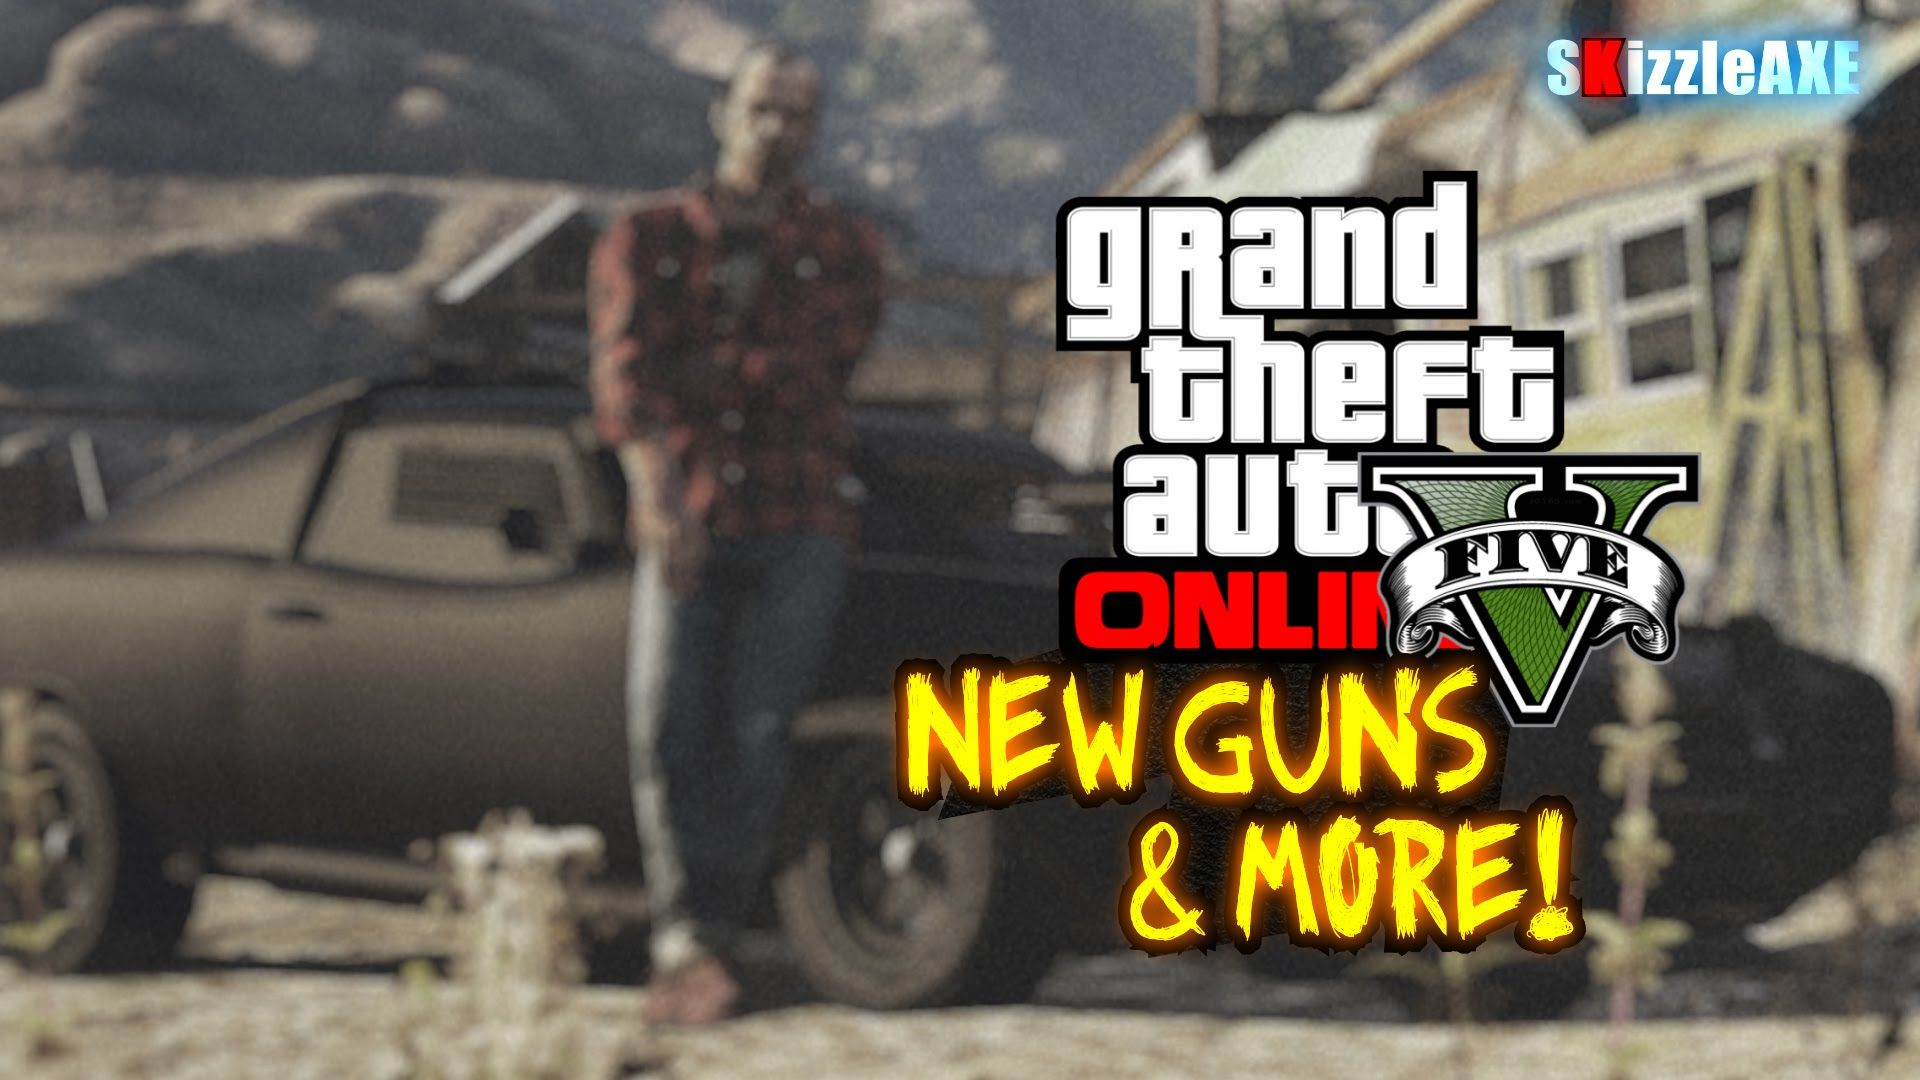 GTA 5 NEW Guns, Cars and Jetpack LEAKED - GTA 5 Online DLC